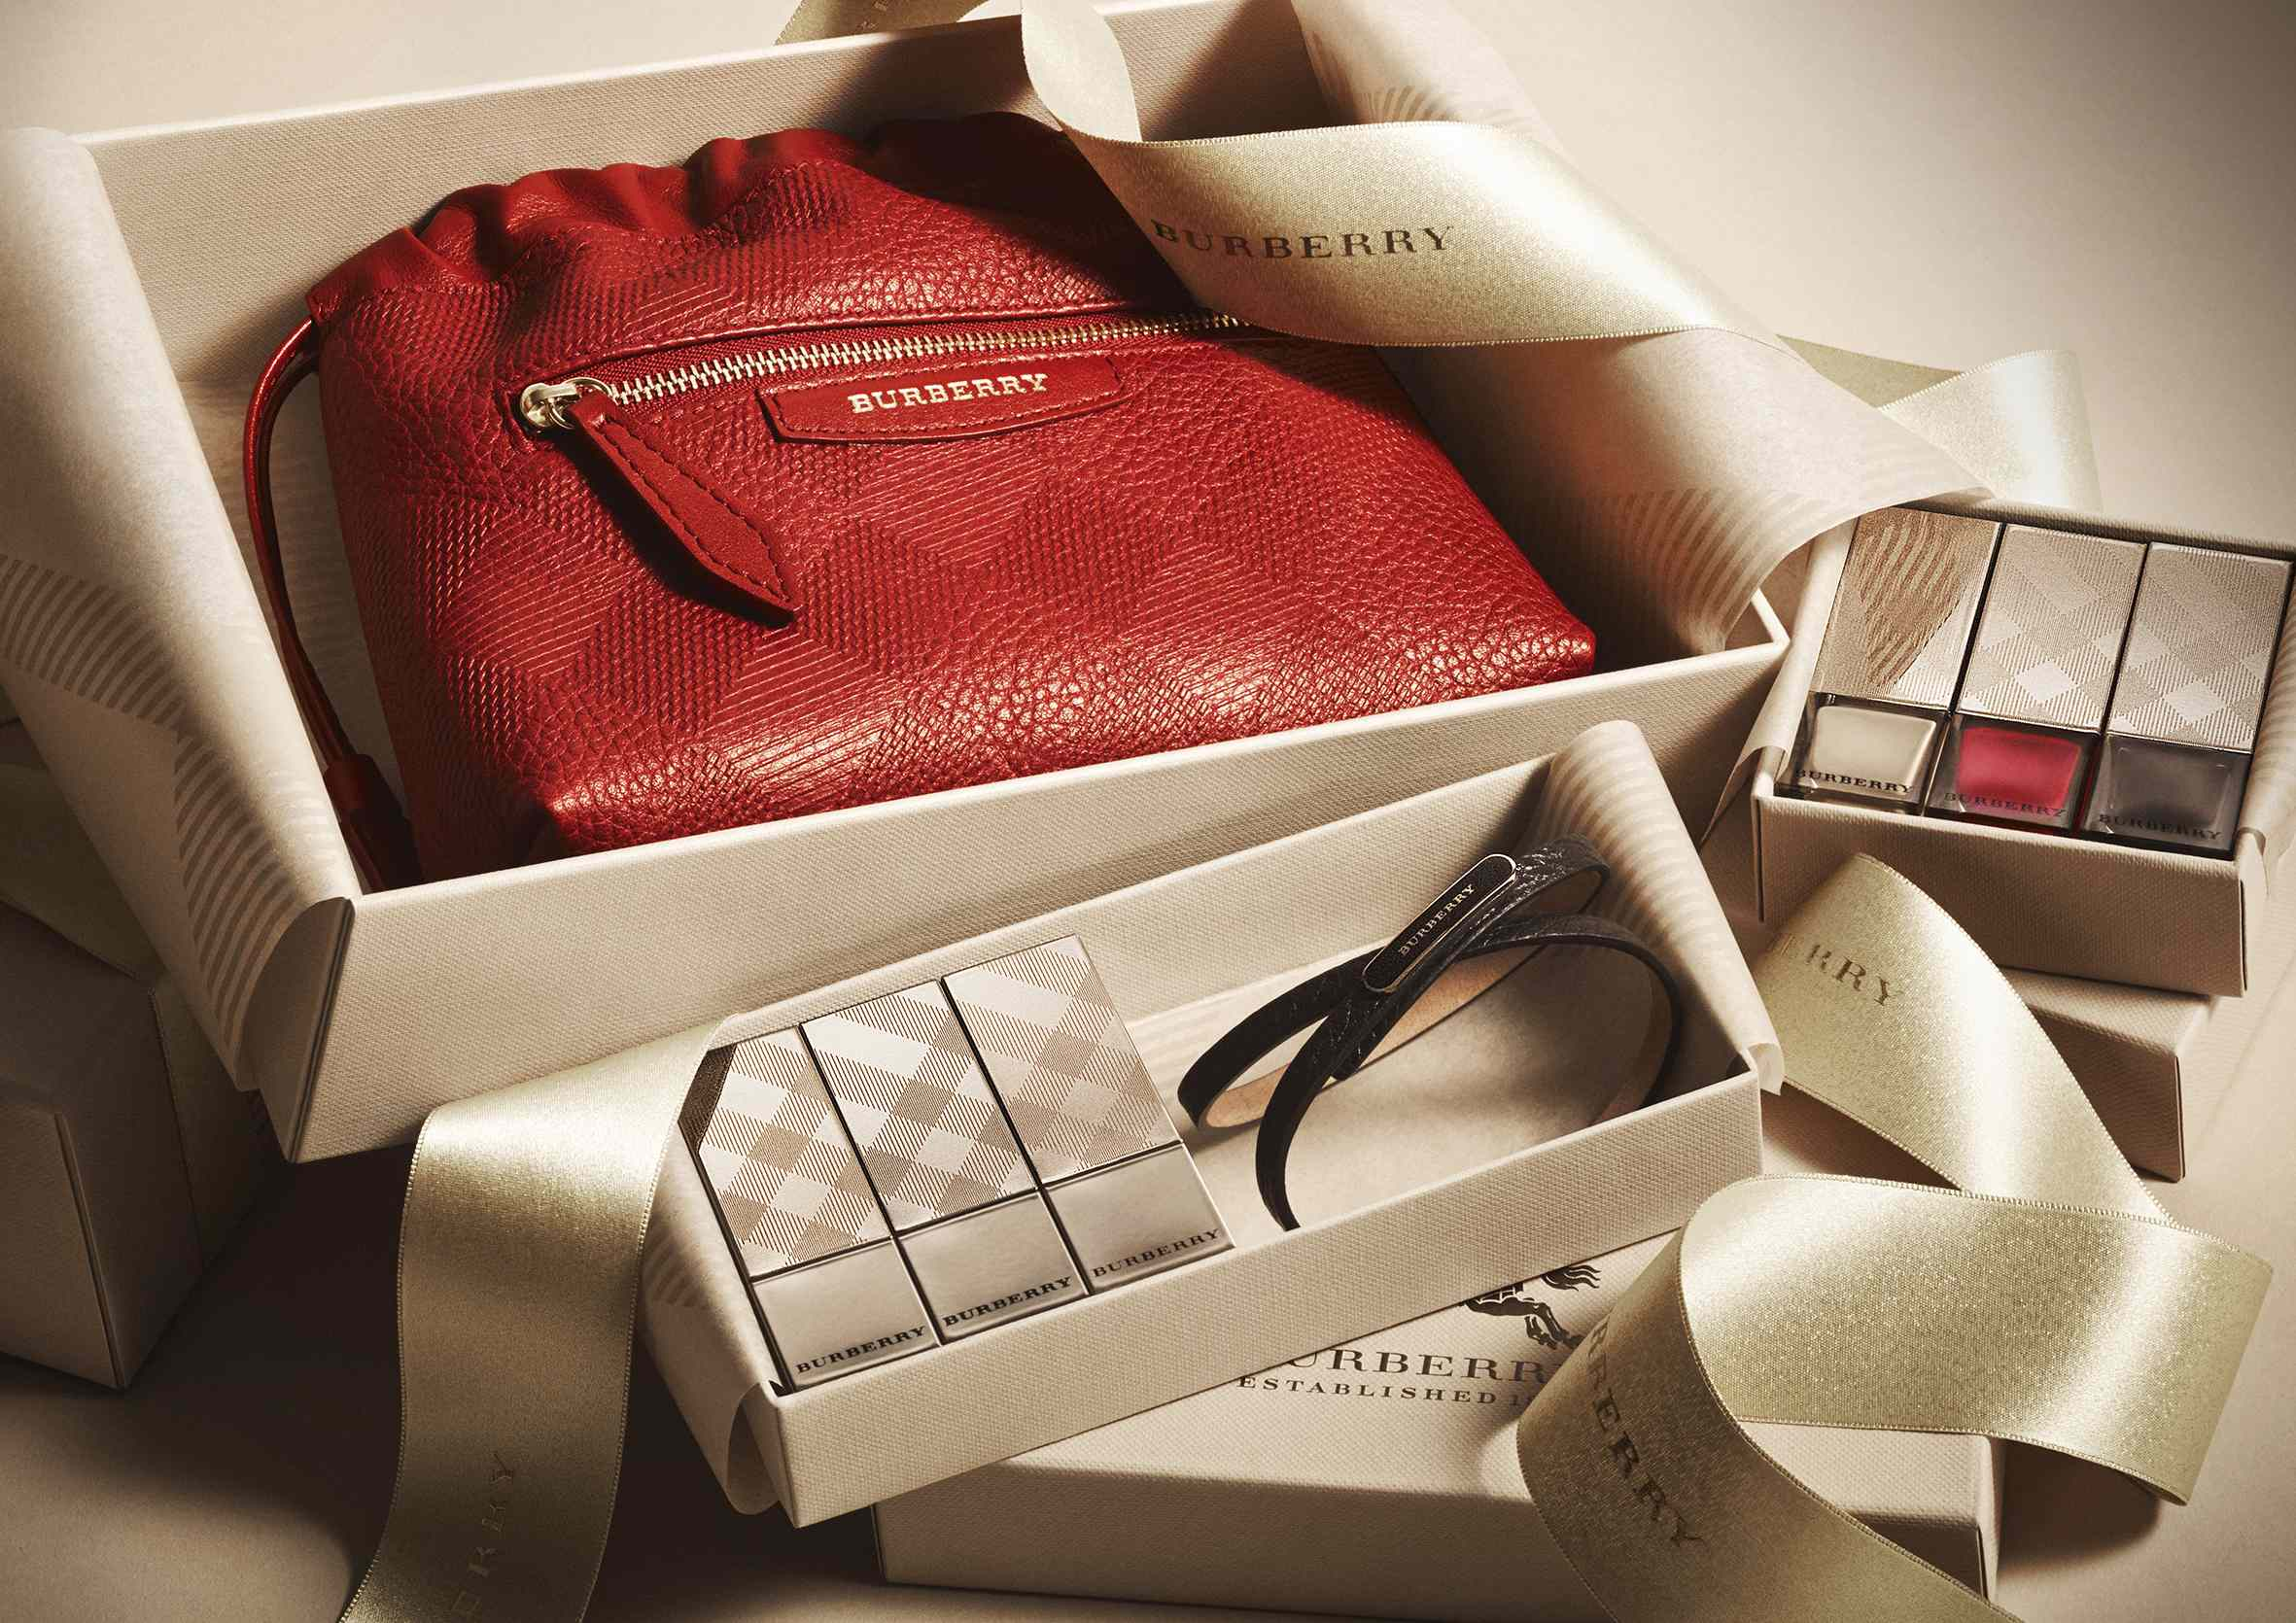 Mix and match to create your own gift box